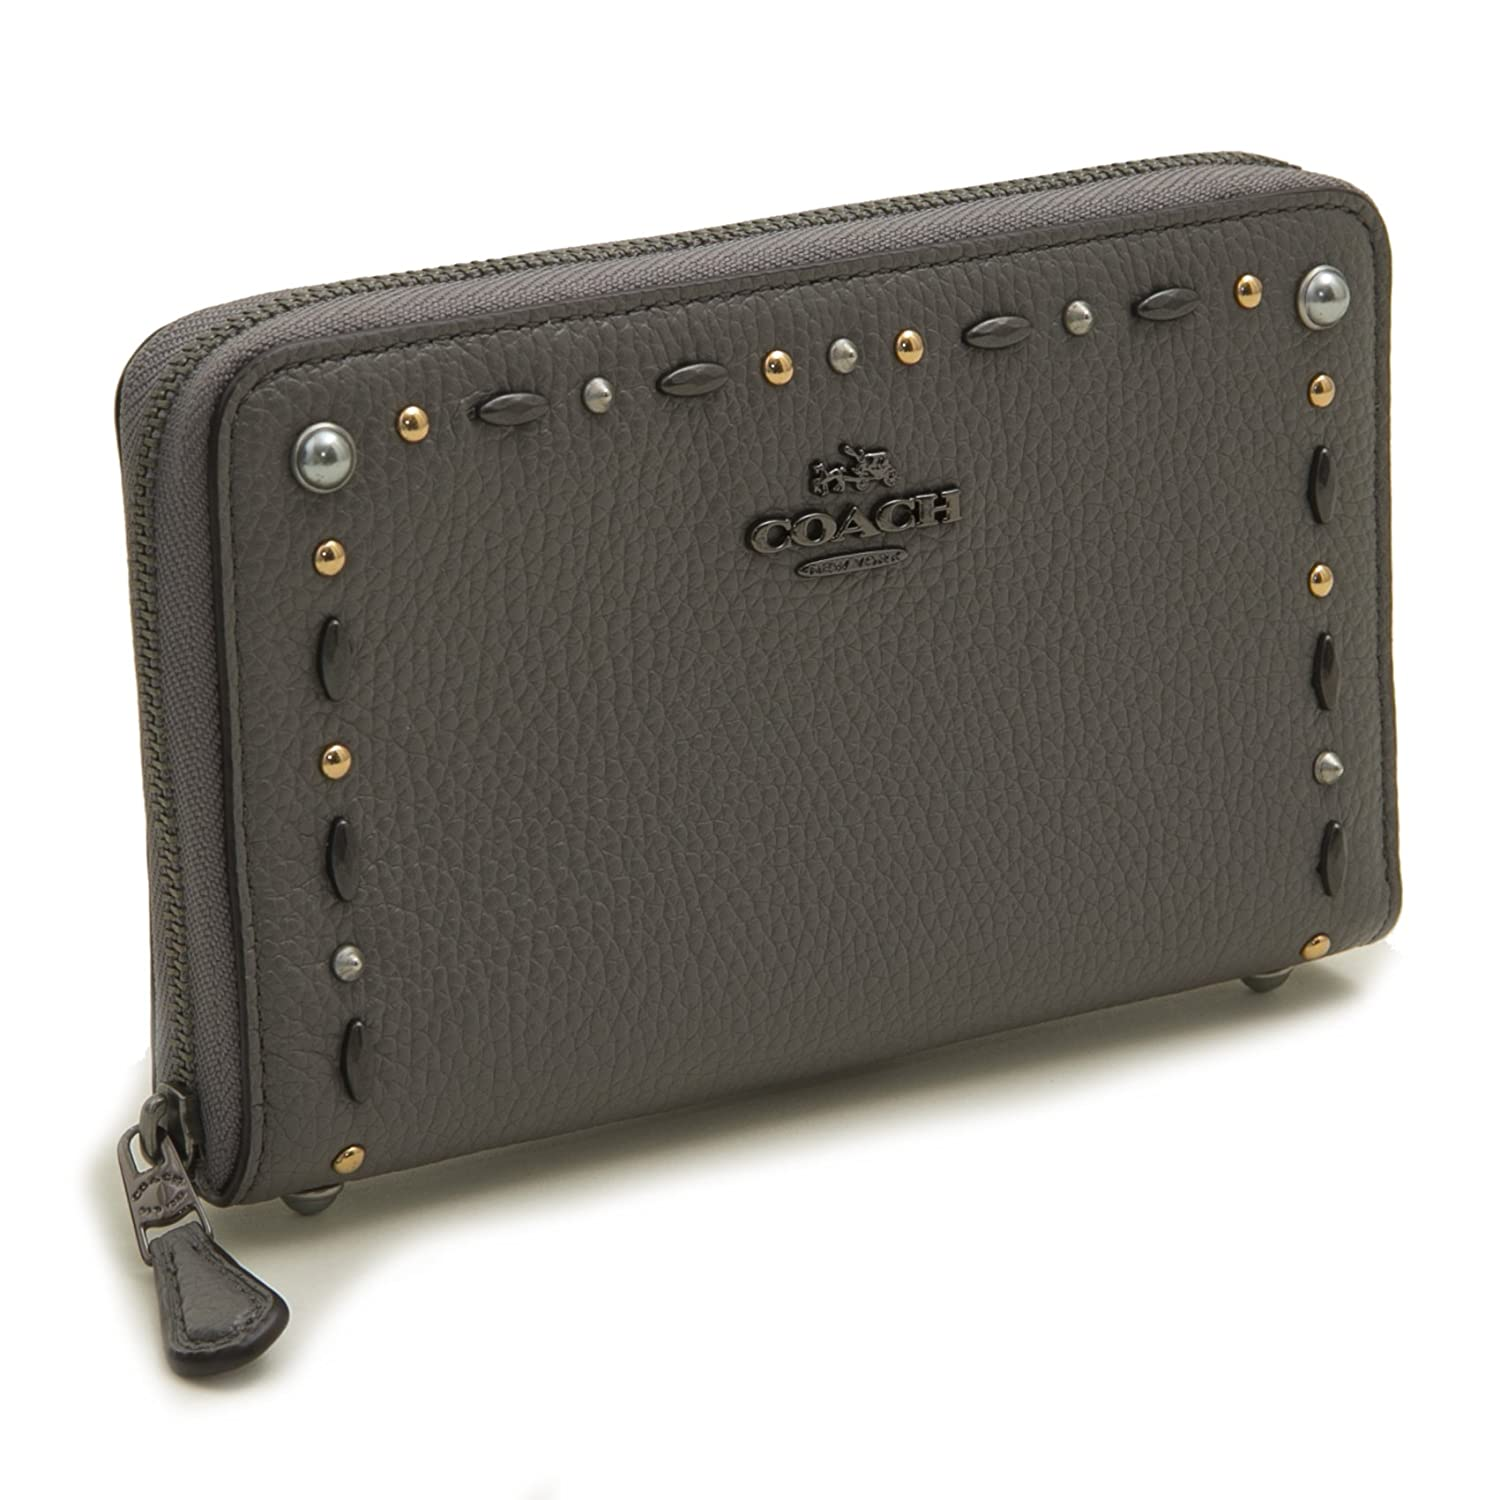 3621a0751dd ... discount code for coach womens medium zip around wallet with prairie  rivets 22892 dkhgr 59578 a694b